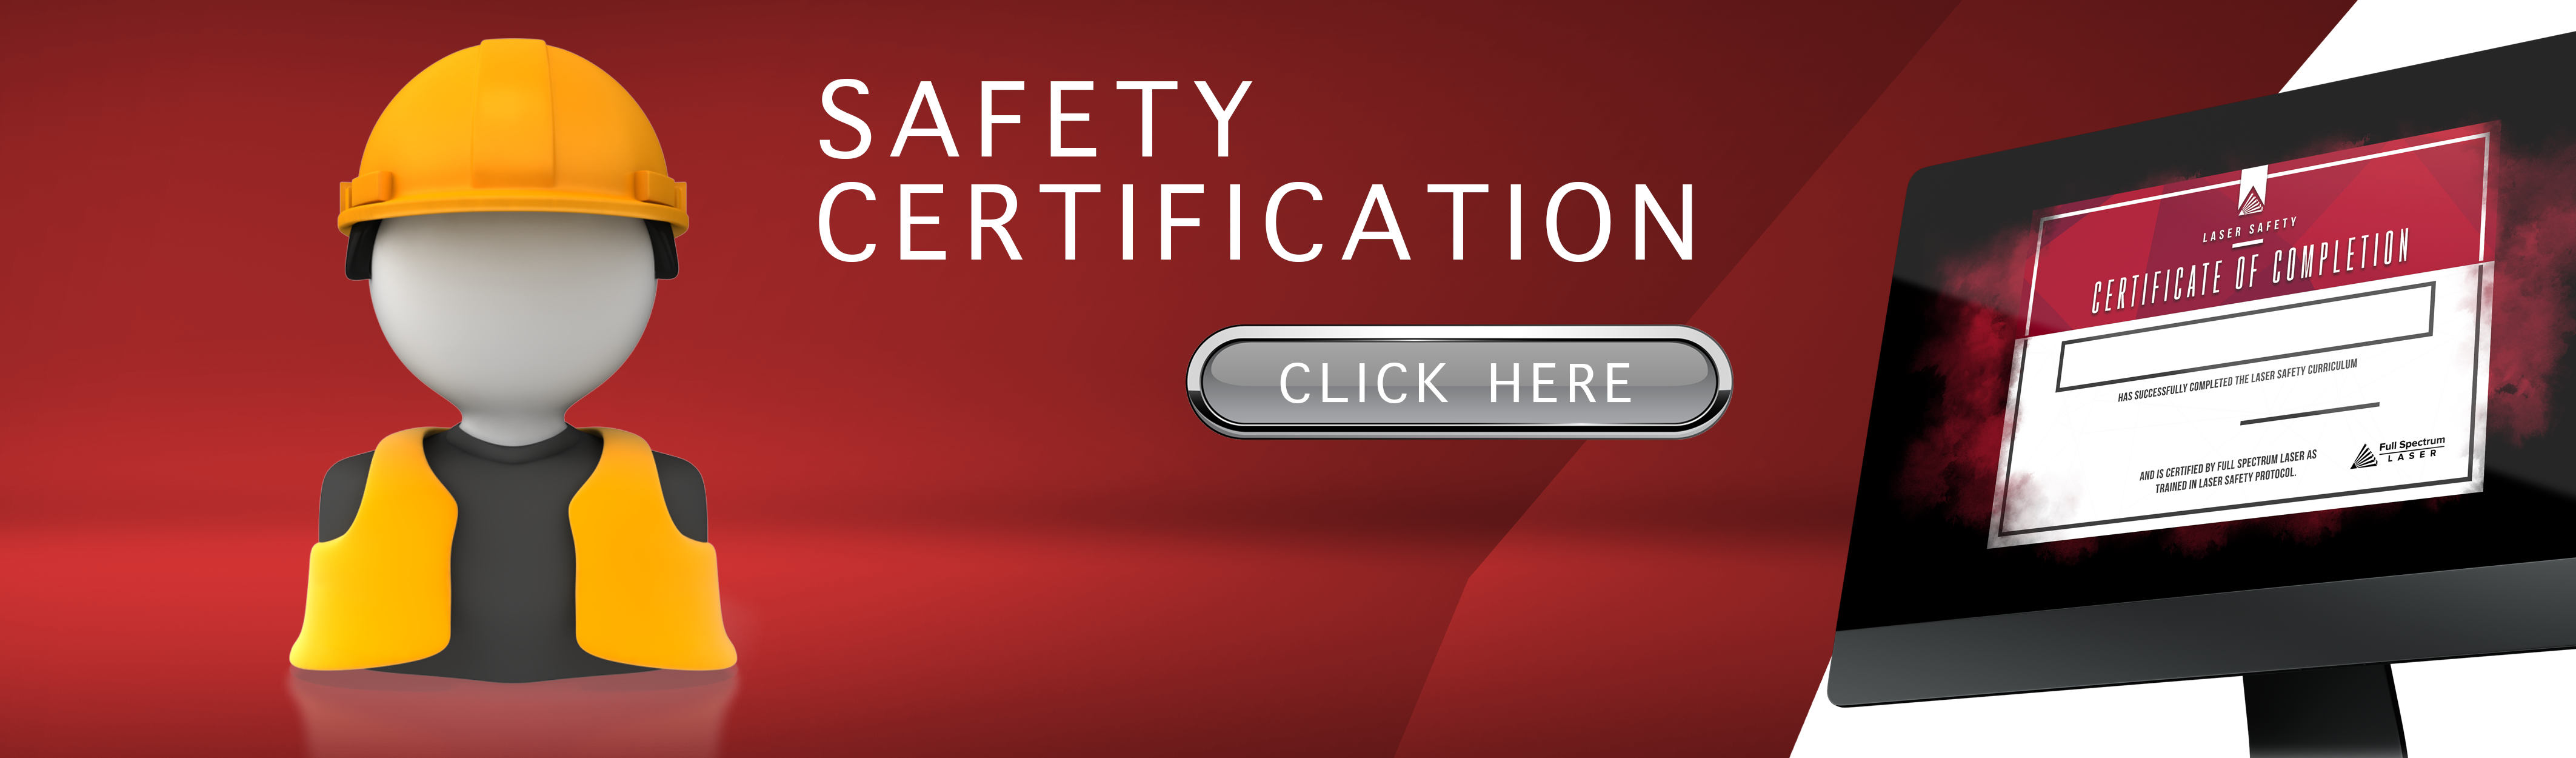 Safety_Photo_Cert.png